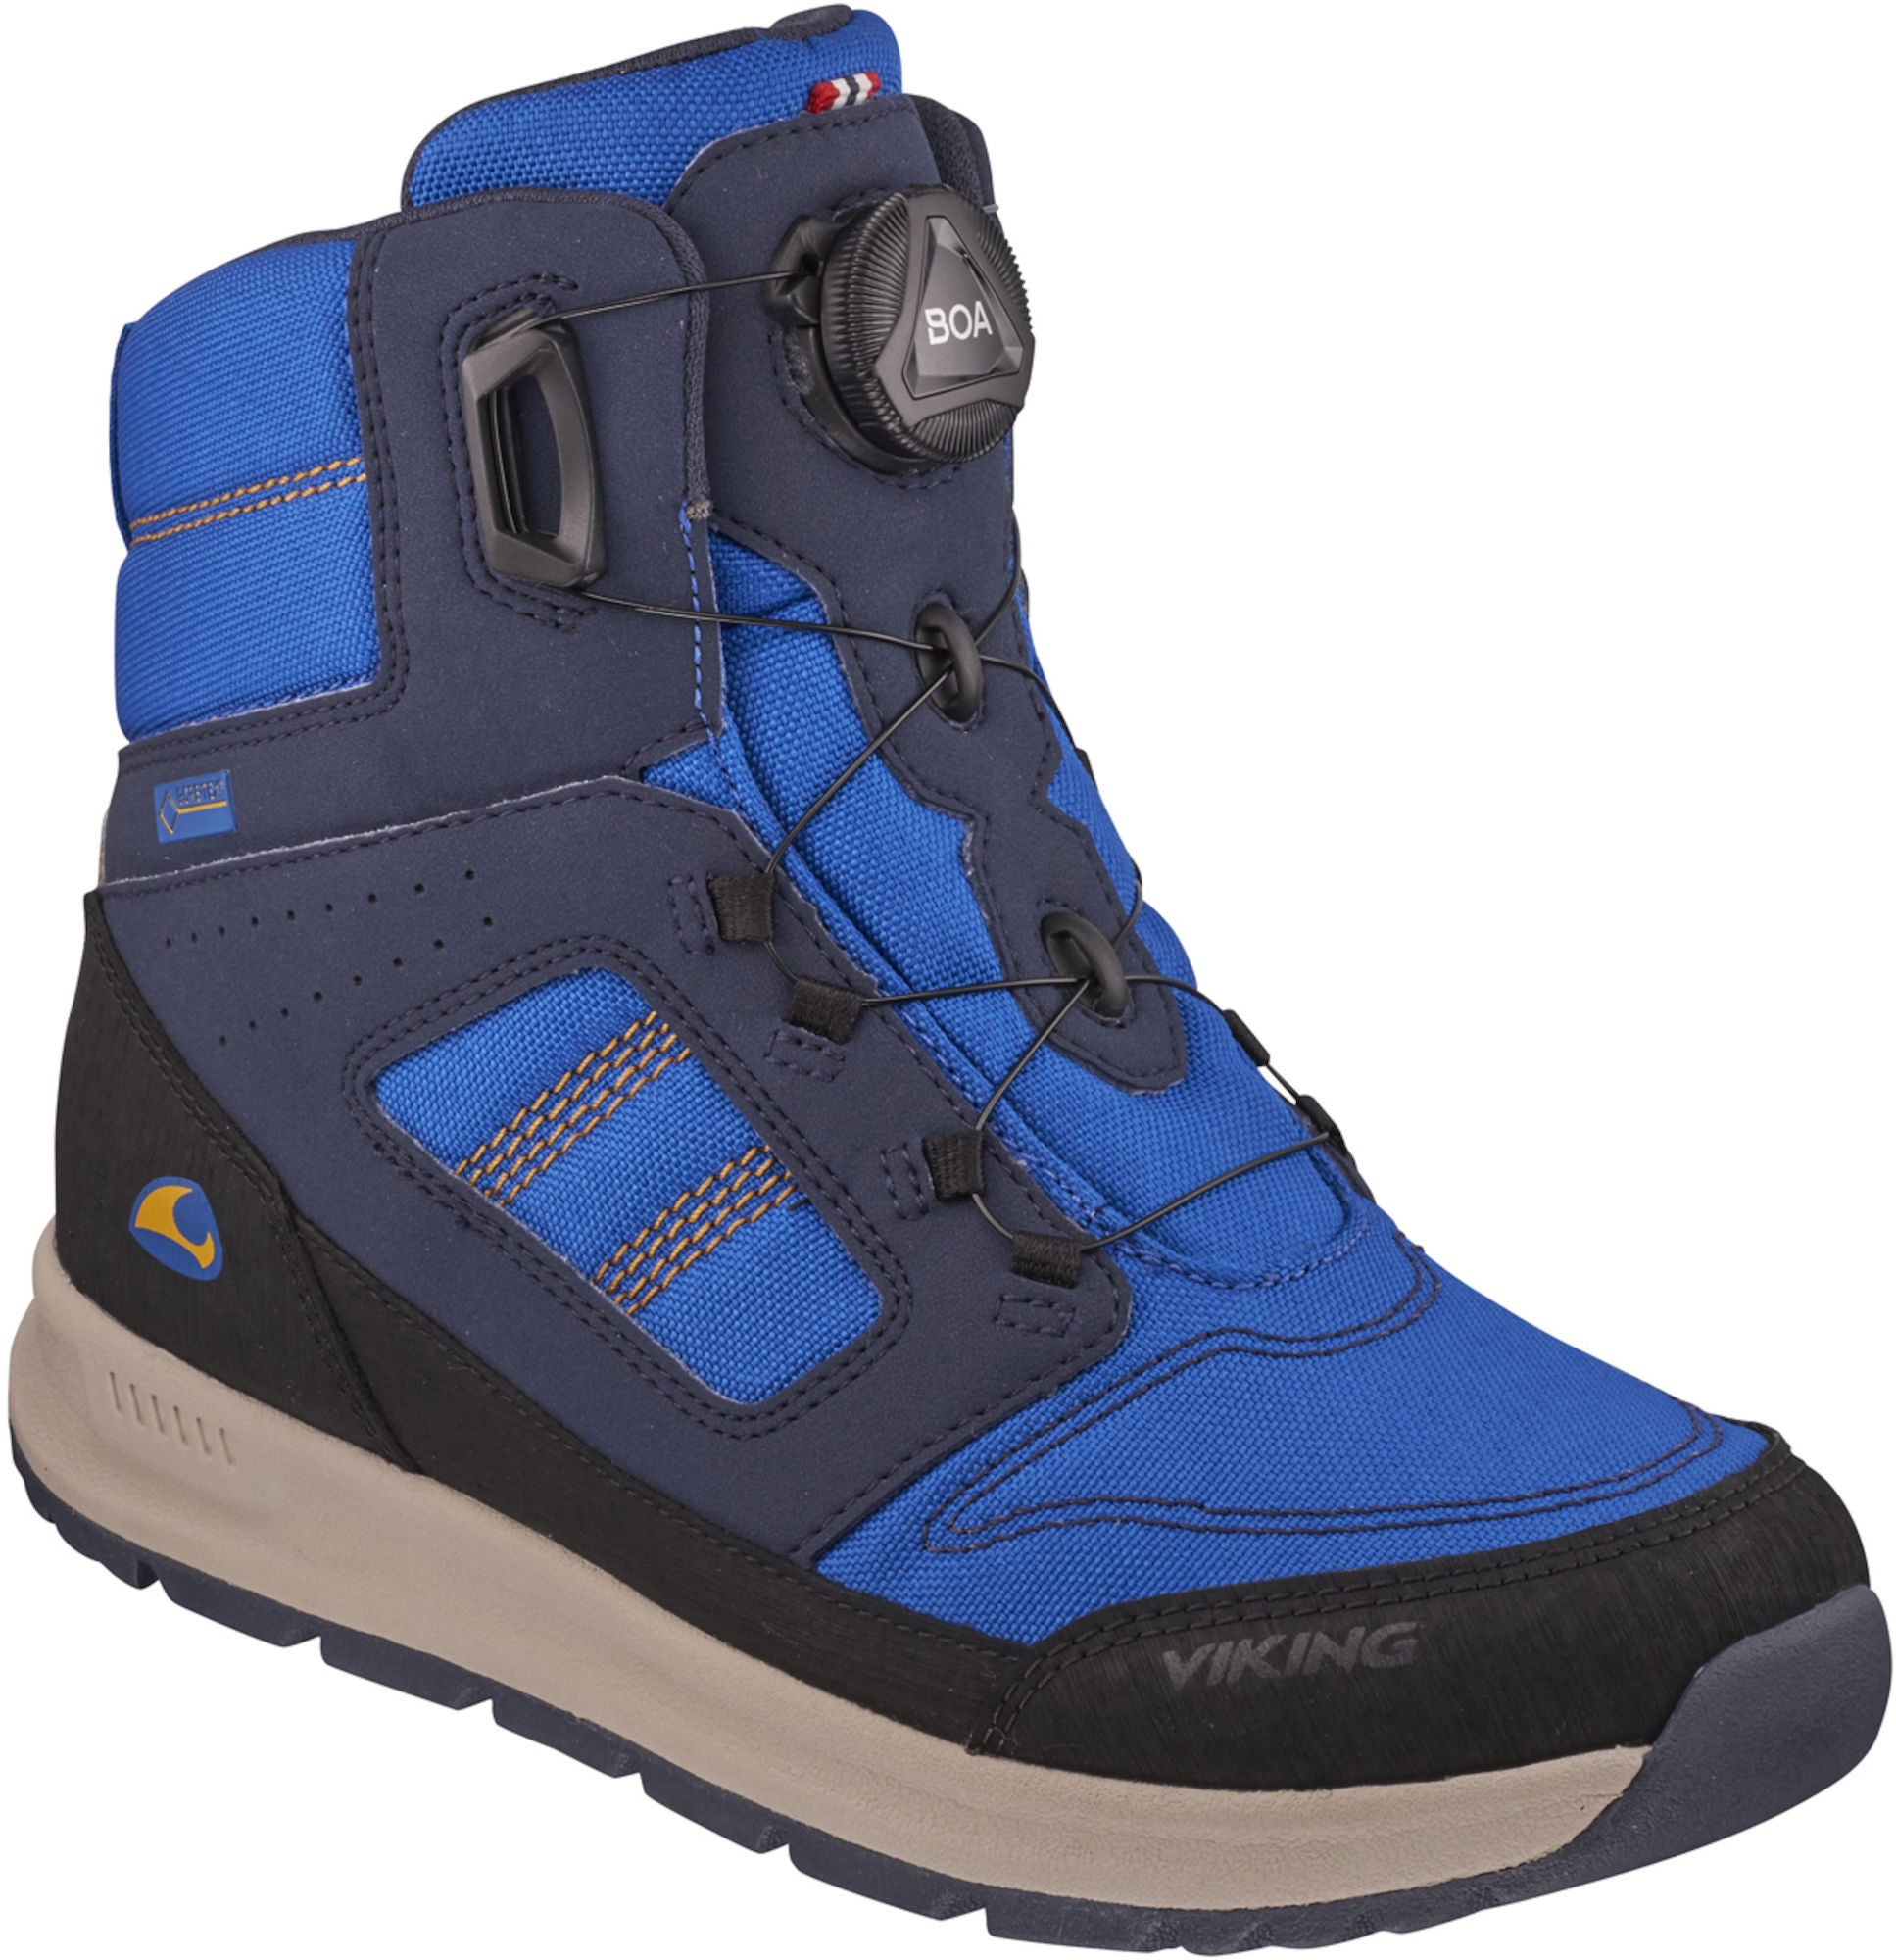 Viking Tryvann Boa GTX Vintersko, Navy/Orange 36